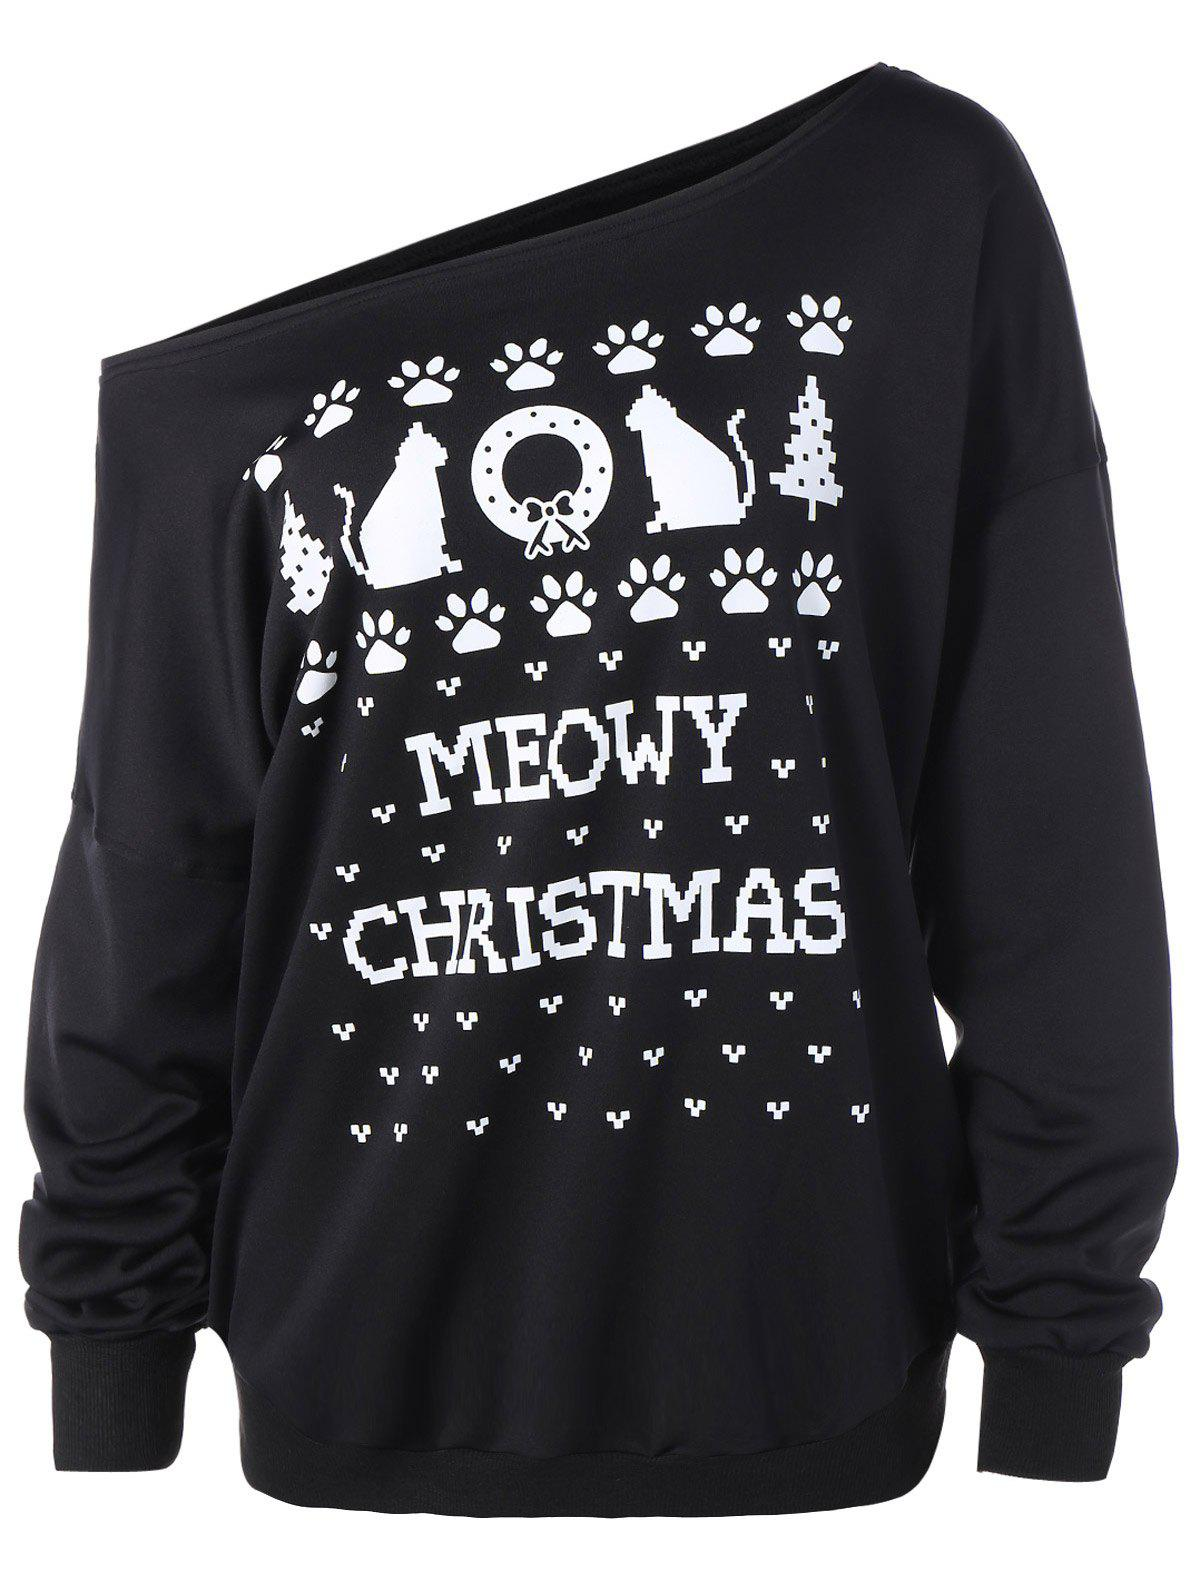 Buy the latest Christmas plus size clothing cheap prices, and check out our daily updated new arrival ugly, light up and novelty Christmas plus size clothing at nirtsnom.tk